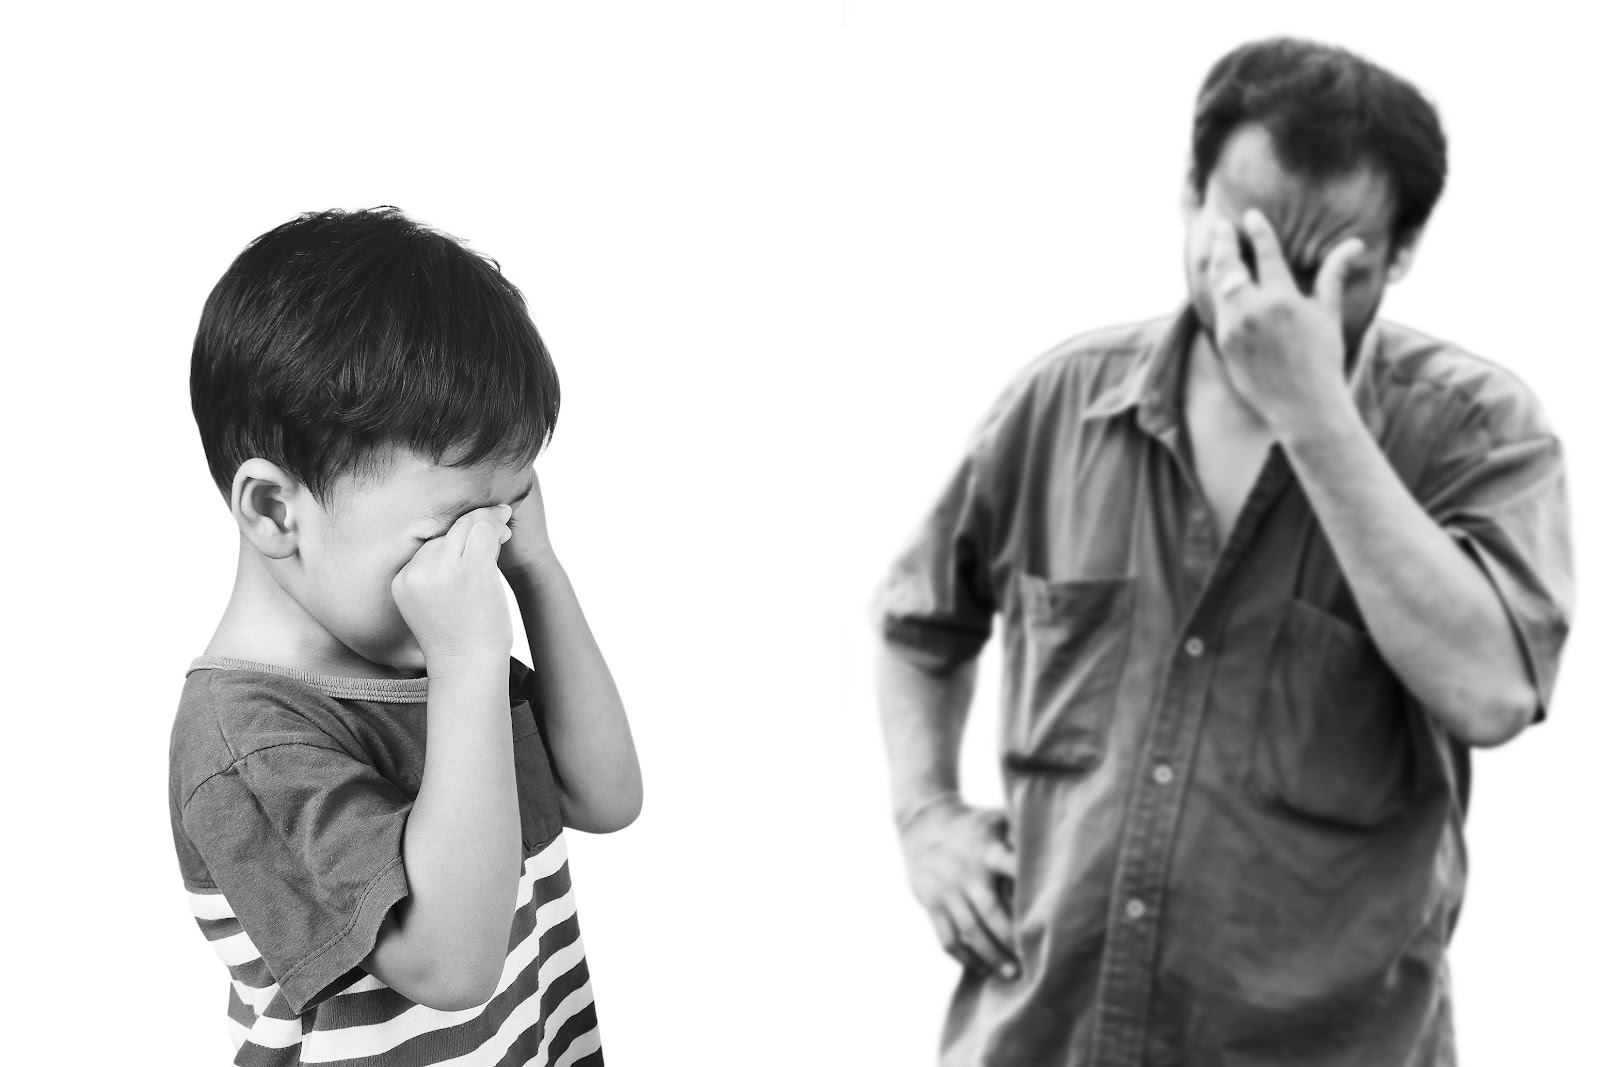 a man and child upset, crying, being judged